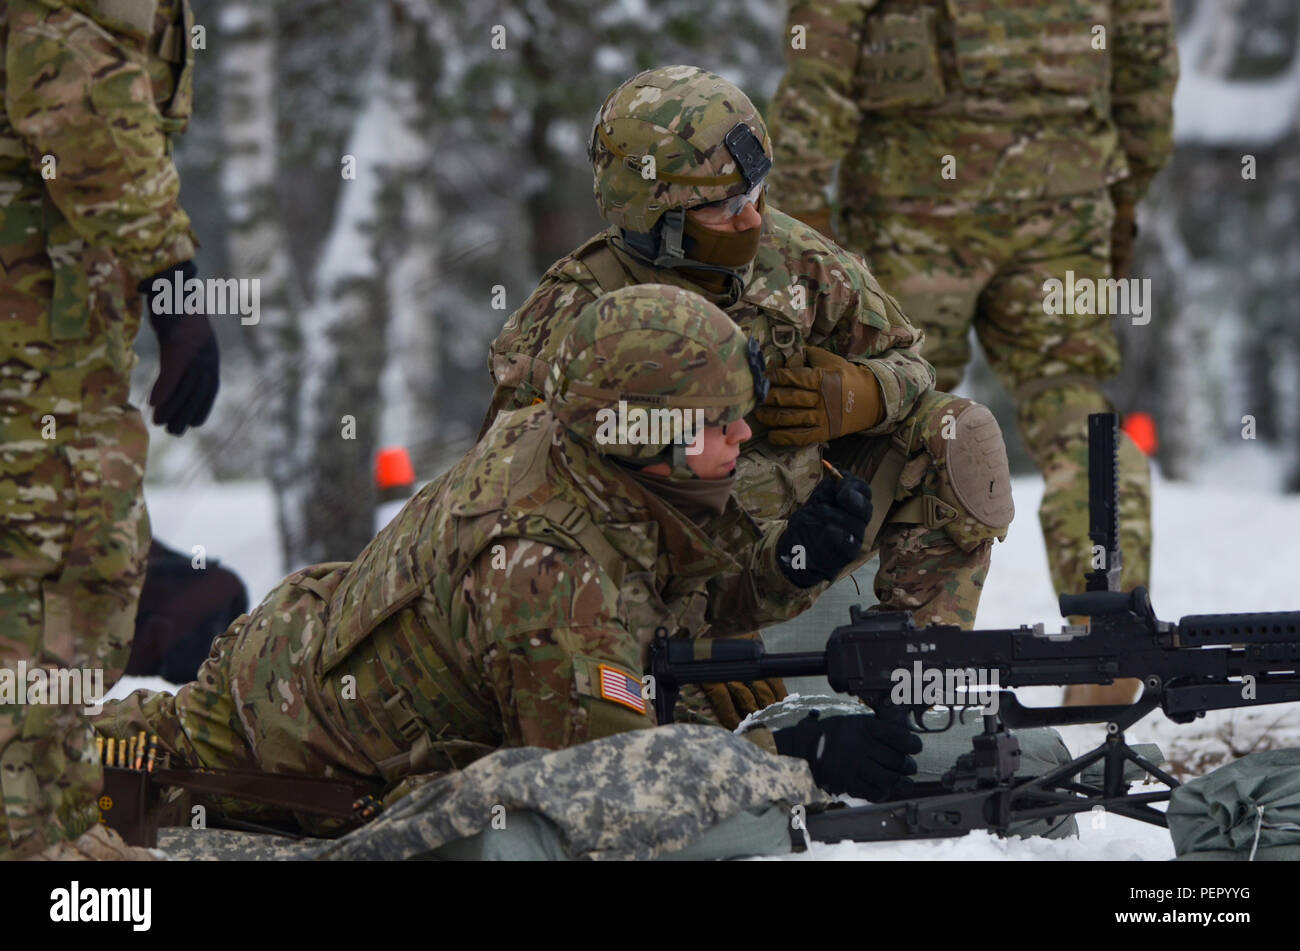 Soldiers of 3rd Squadron, 2nd Cavalry Regiment, stationed at Vilseck, Germany, identify their target before firing during a training exercise at Adazi Training Area in Latvia, Jan. 25, 2016. (U.S. Army photo by Staff Sgt. Steven Colvin/Released) - Stock Image